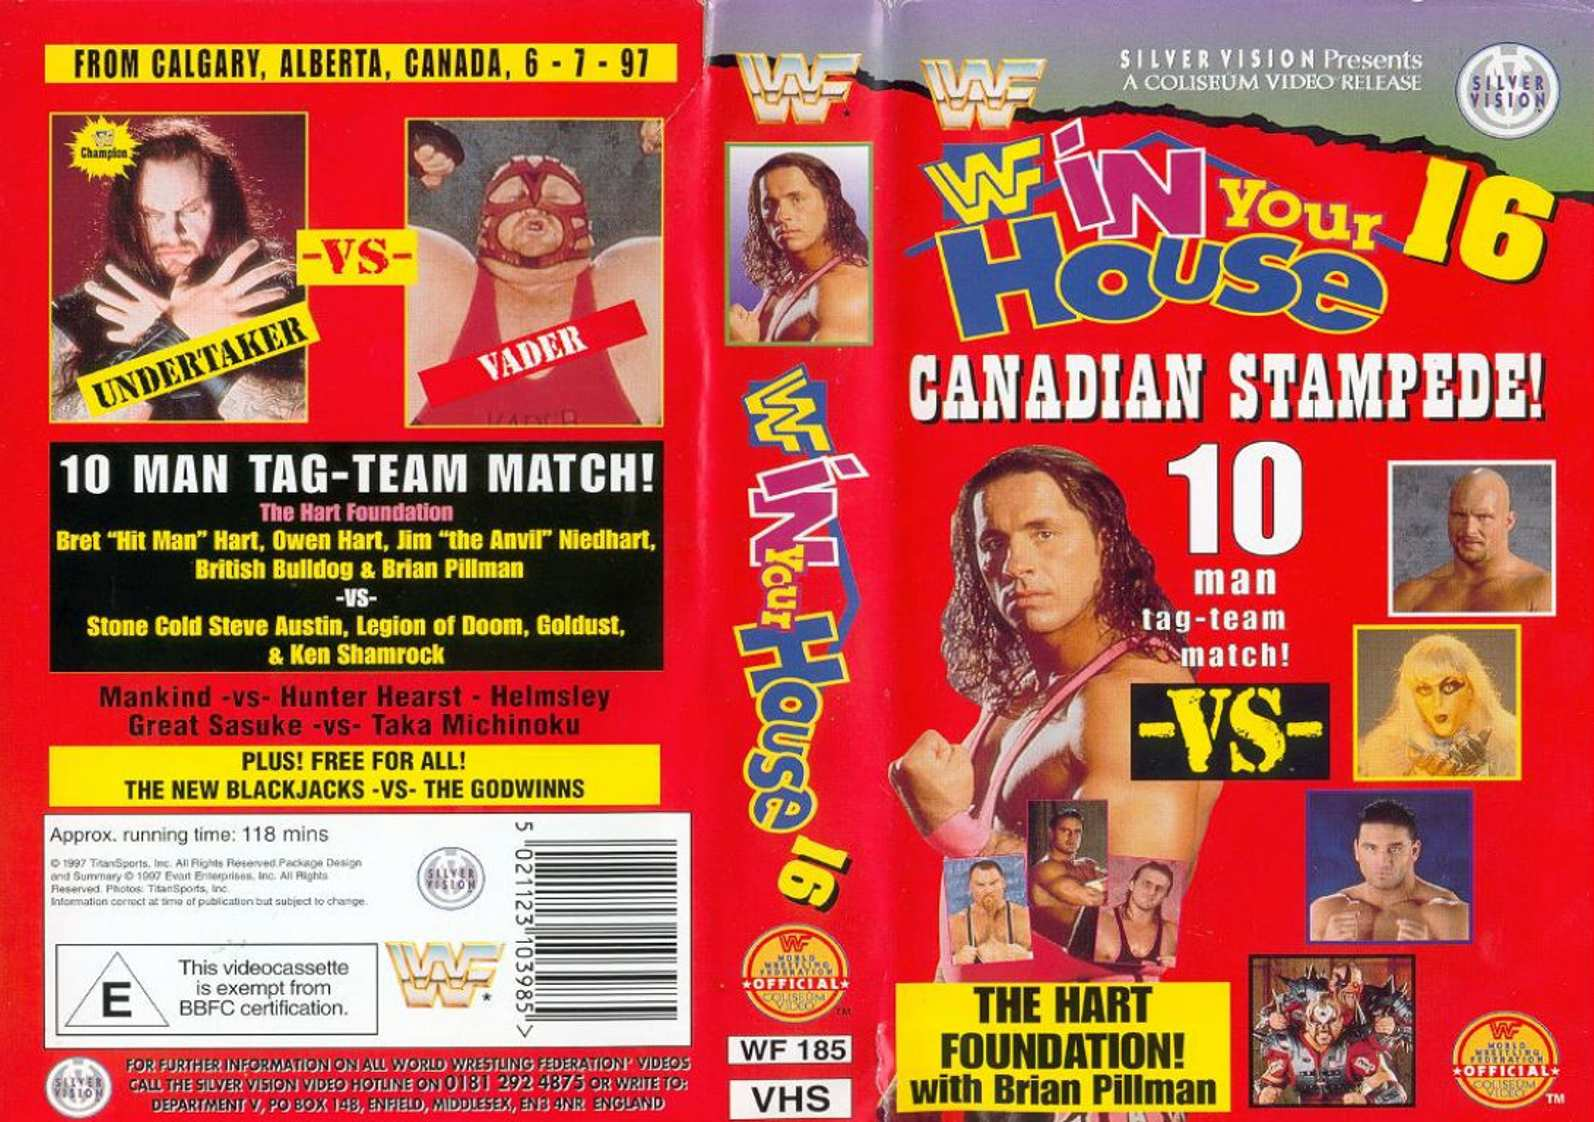 wwf_in_your_house_16_-_canadian_stampede